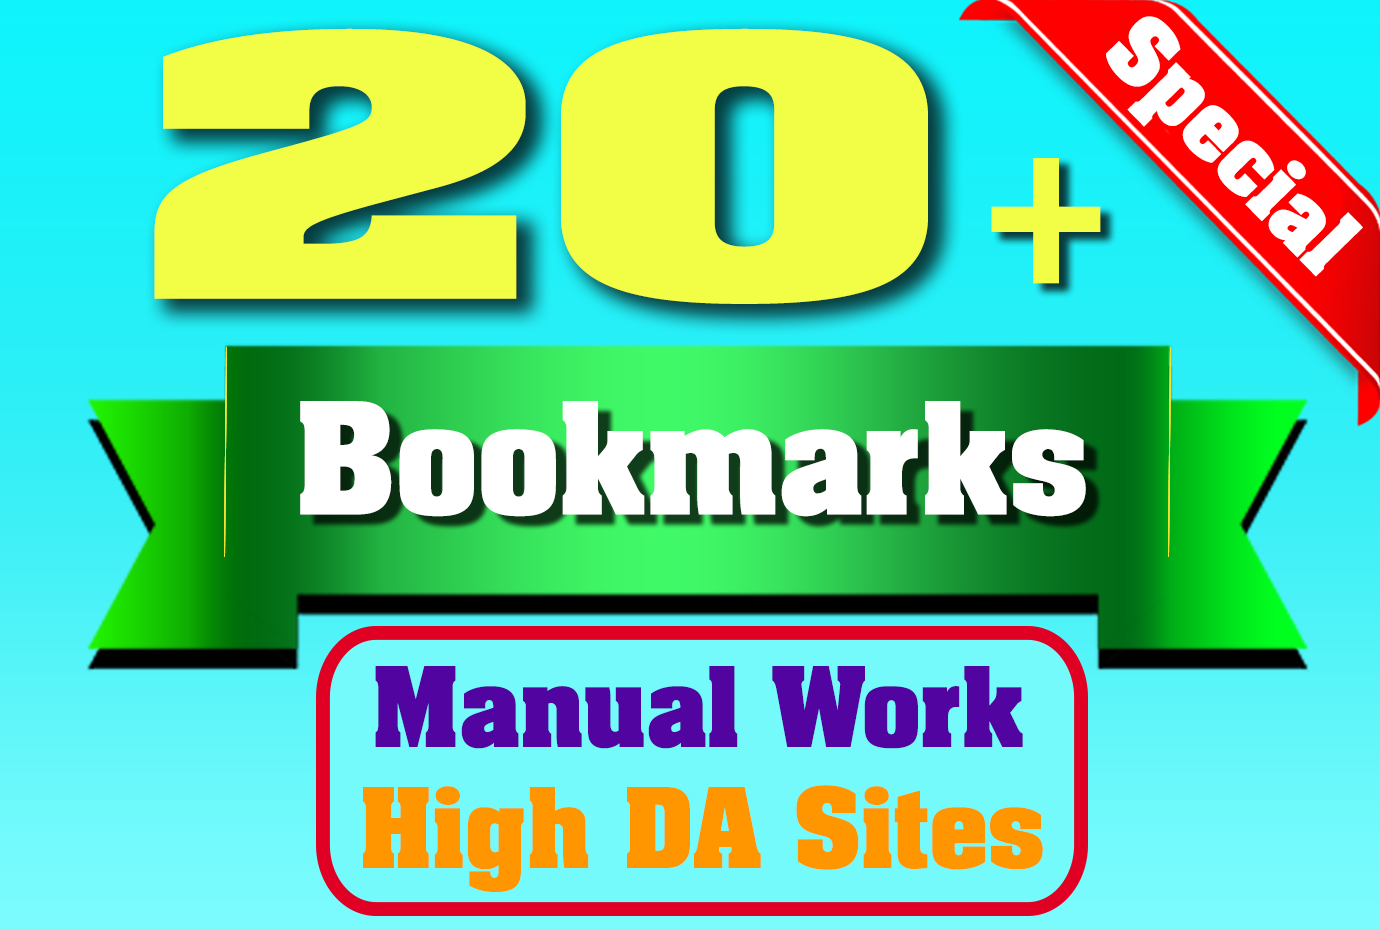 Manual Quality Social bookmarks 20 + High DA backlinks for your website